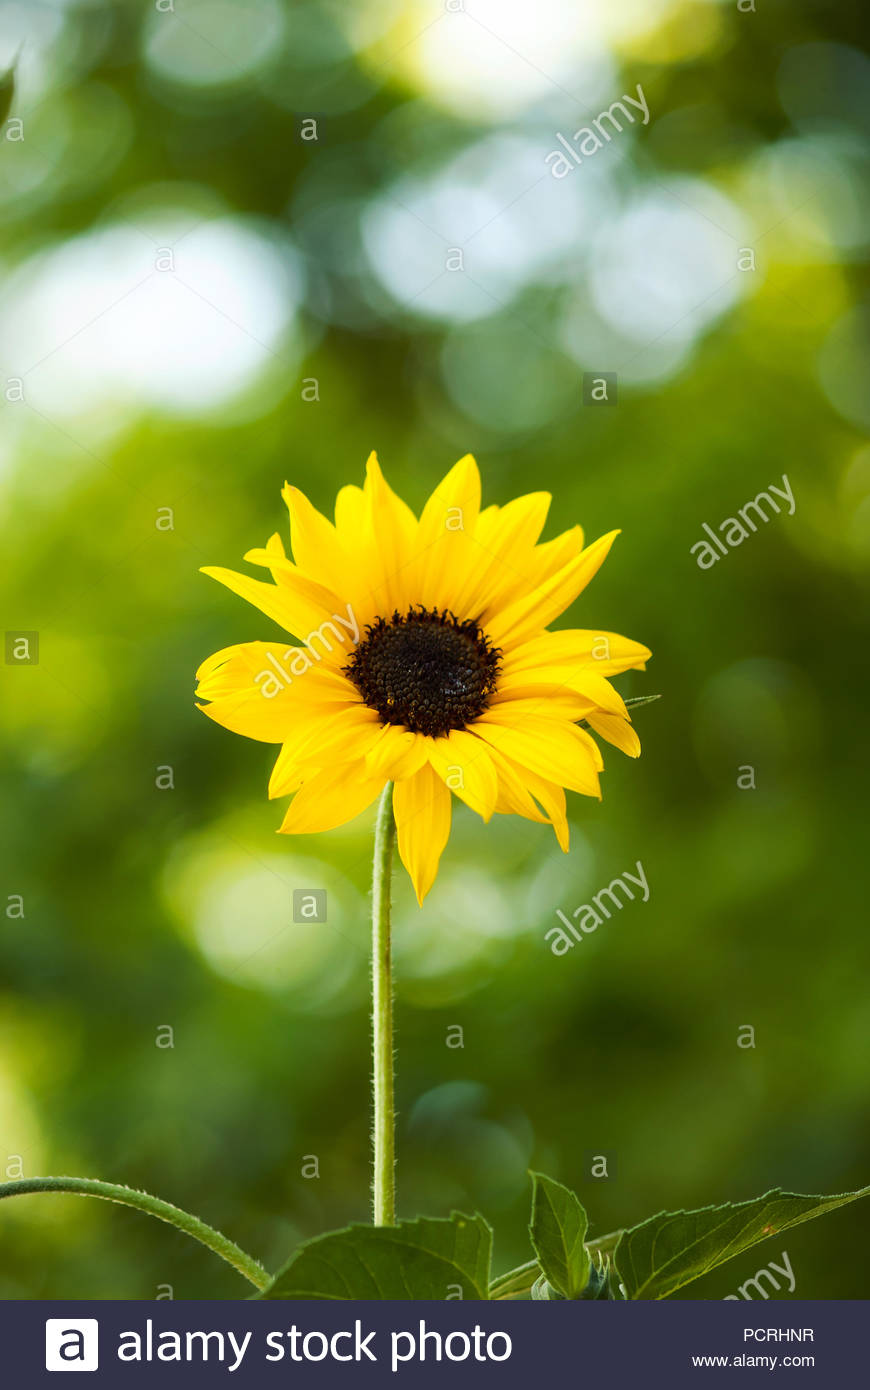 A bright, yellow sunflower blooms against a green background on a warm summer day. - Stock Image